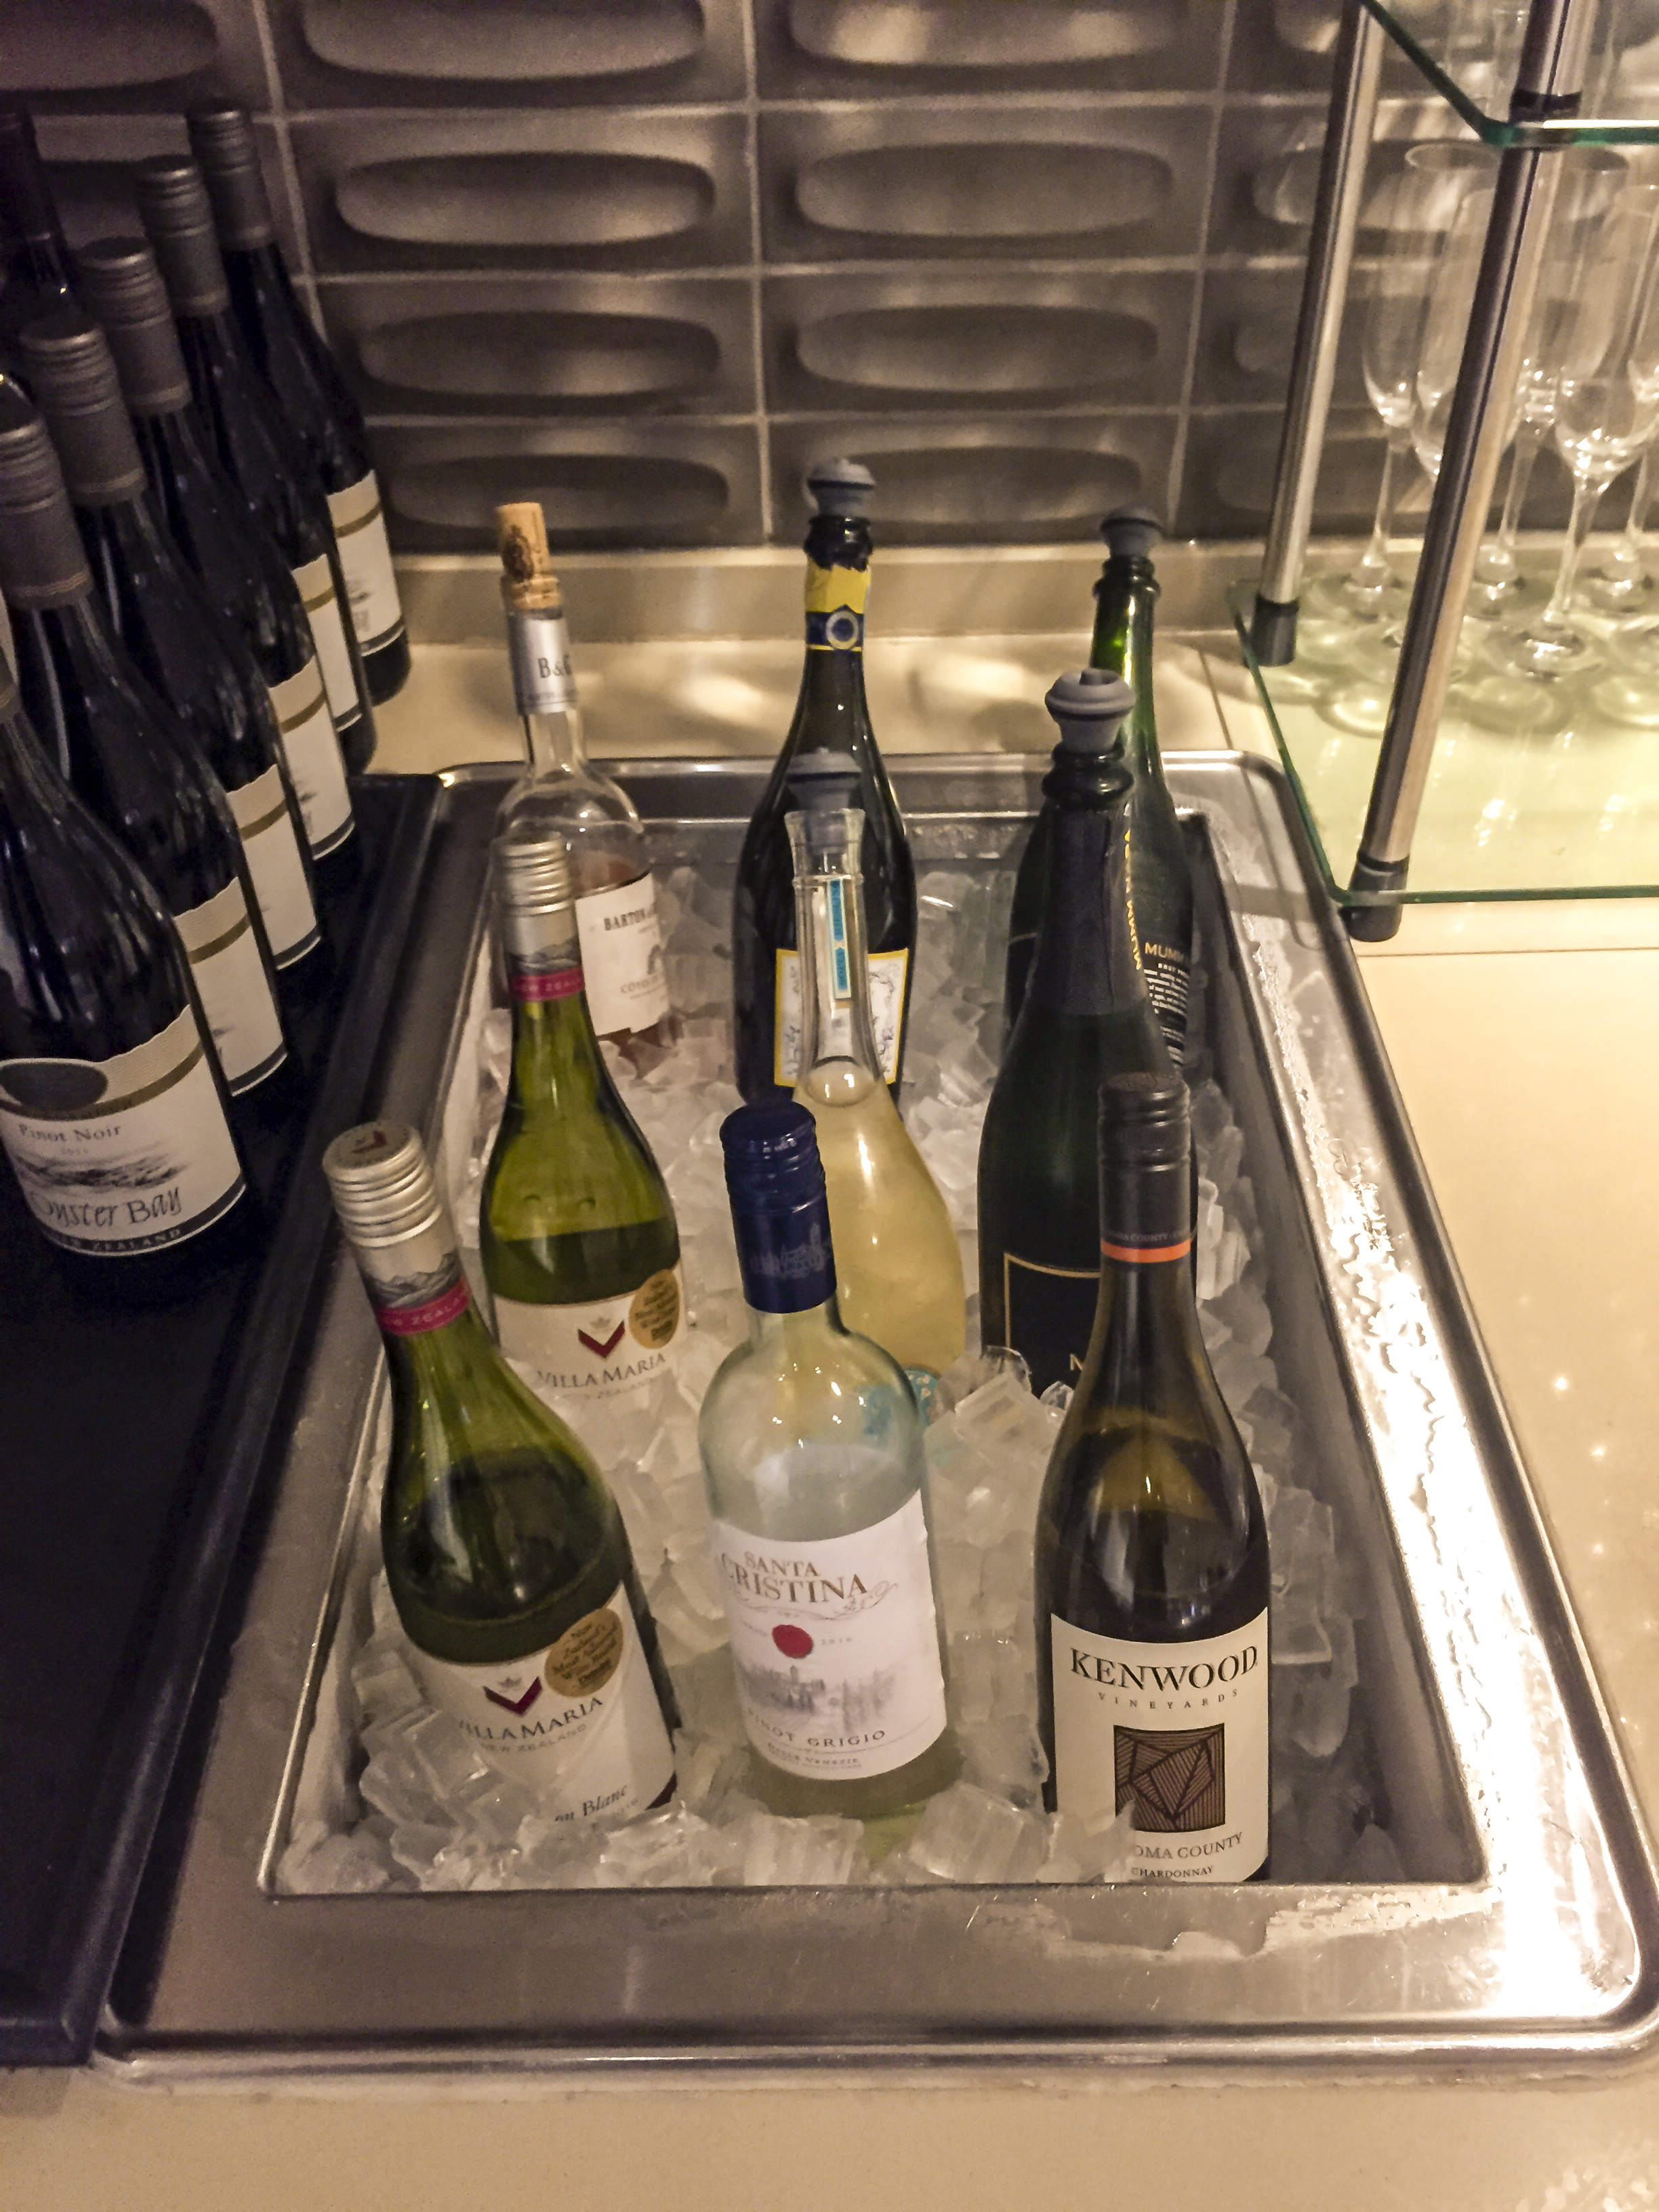 Part of the wine selection